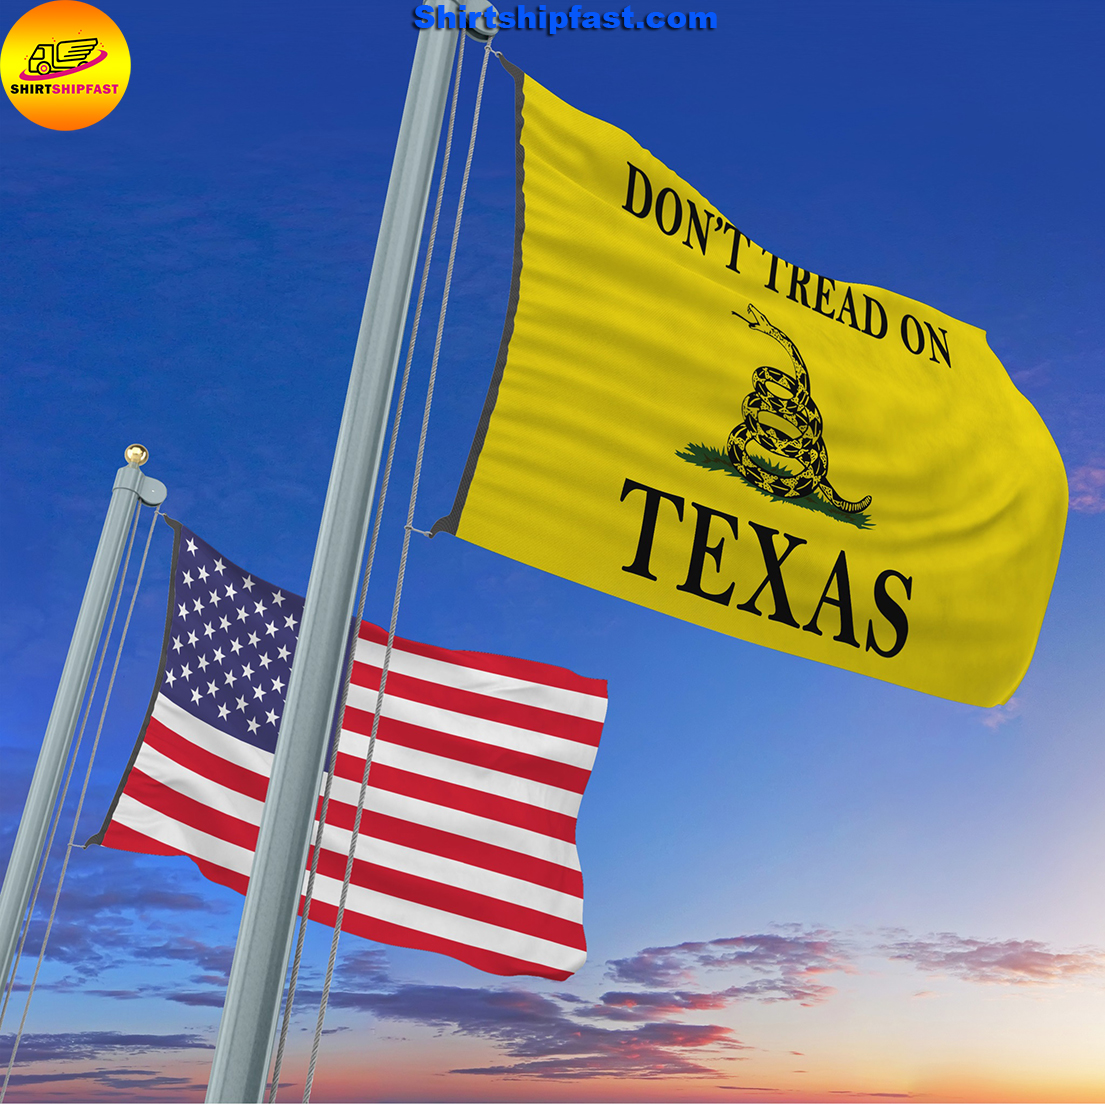 Don't tread on Texas flag - Picture 1